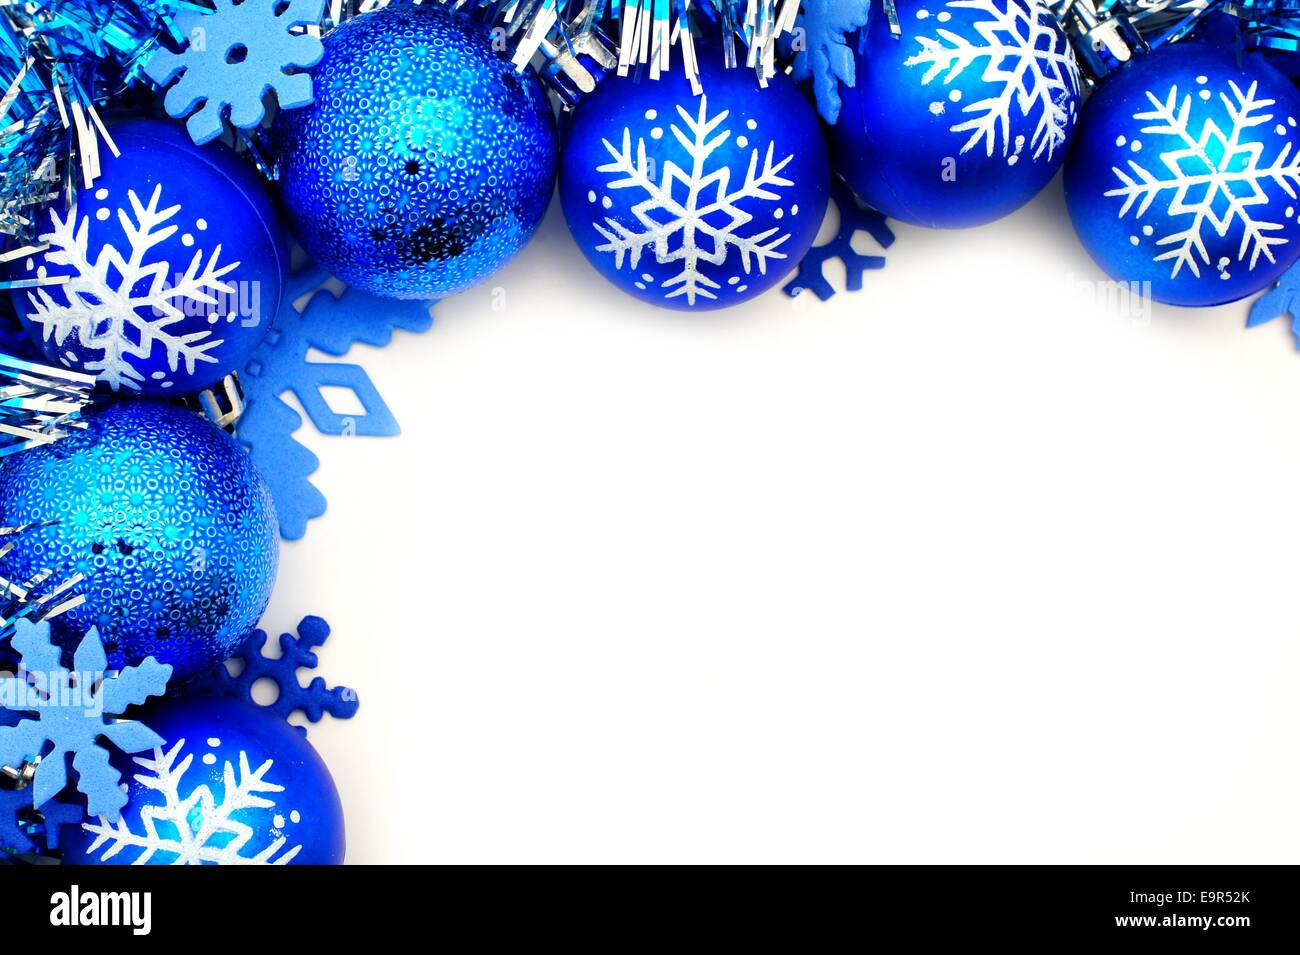 Blue Christmas Corner Border With Baubles And Snowflakes  Stock Image